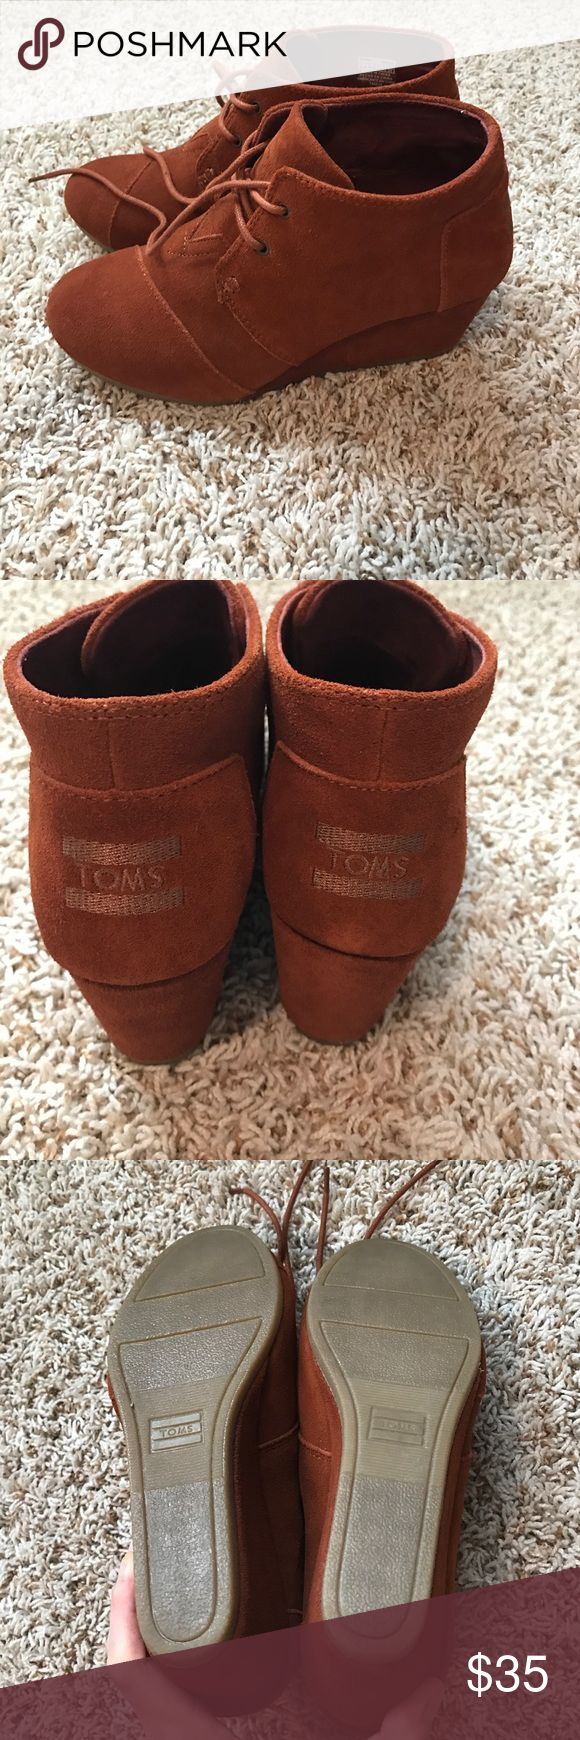 Toms Wedge booties Cognac suede. Worn once TOMS Shoes Ankle Boots & Booties